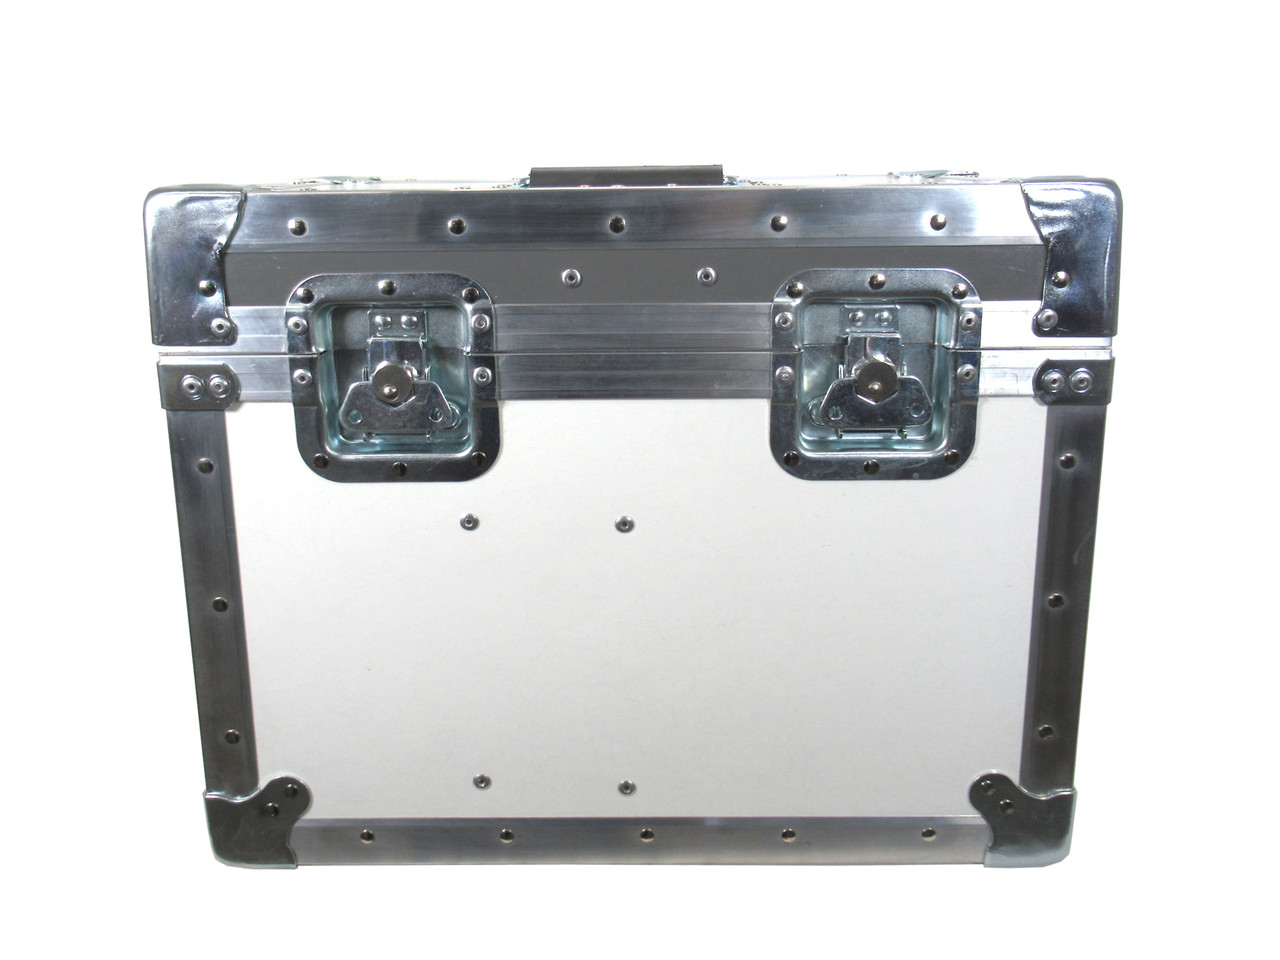 smallHD 1303 HDR (Battery Plate Attached)